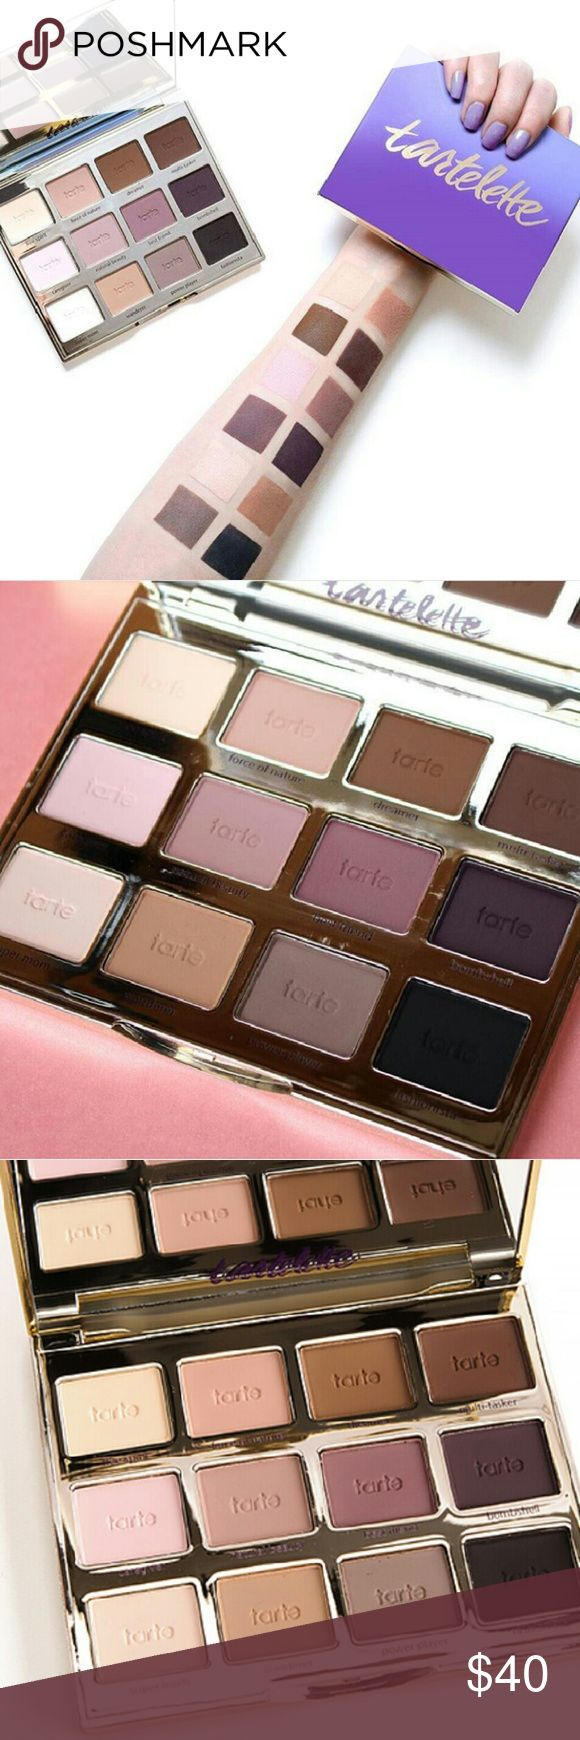 Tart pallet What it is:? An all-matte palette with 12 exclusive eye shadows.?  What it does:? By popular demand, tarte is introducing an all-matte shadow palette featuring 12 never-before-seen shades to inspire, celebrate, and empower real women. As beautifully diverse as the brand?s loyal fans, this sleek, statement palette features tarte?s signature Amazonian clay-infused, long-wear eye shadows in a mix of liner, lid, and crease shadow shades. The palette also includes a step-by-step guide…